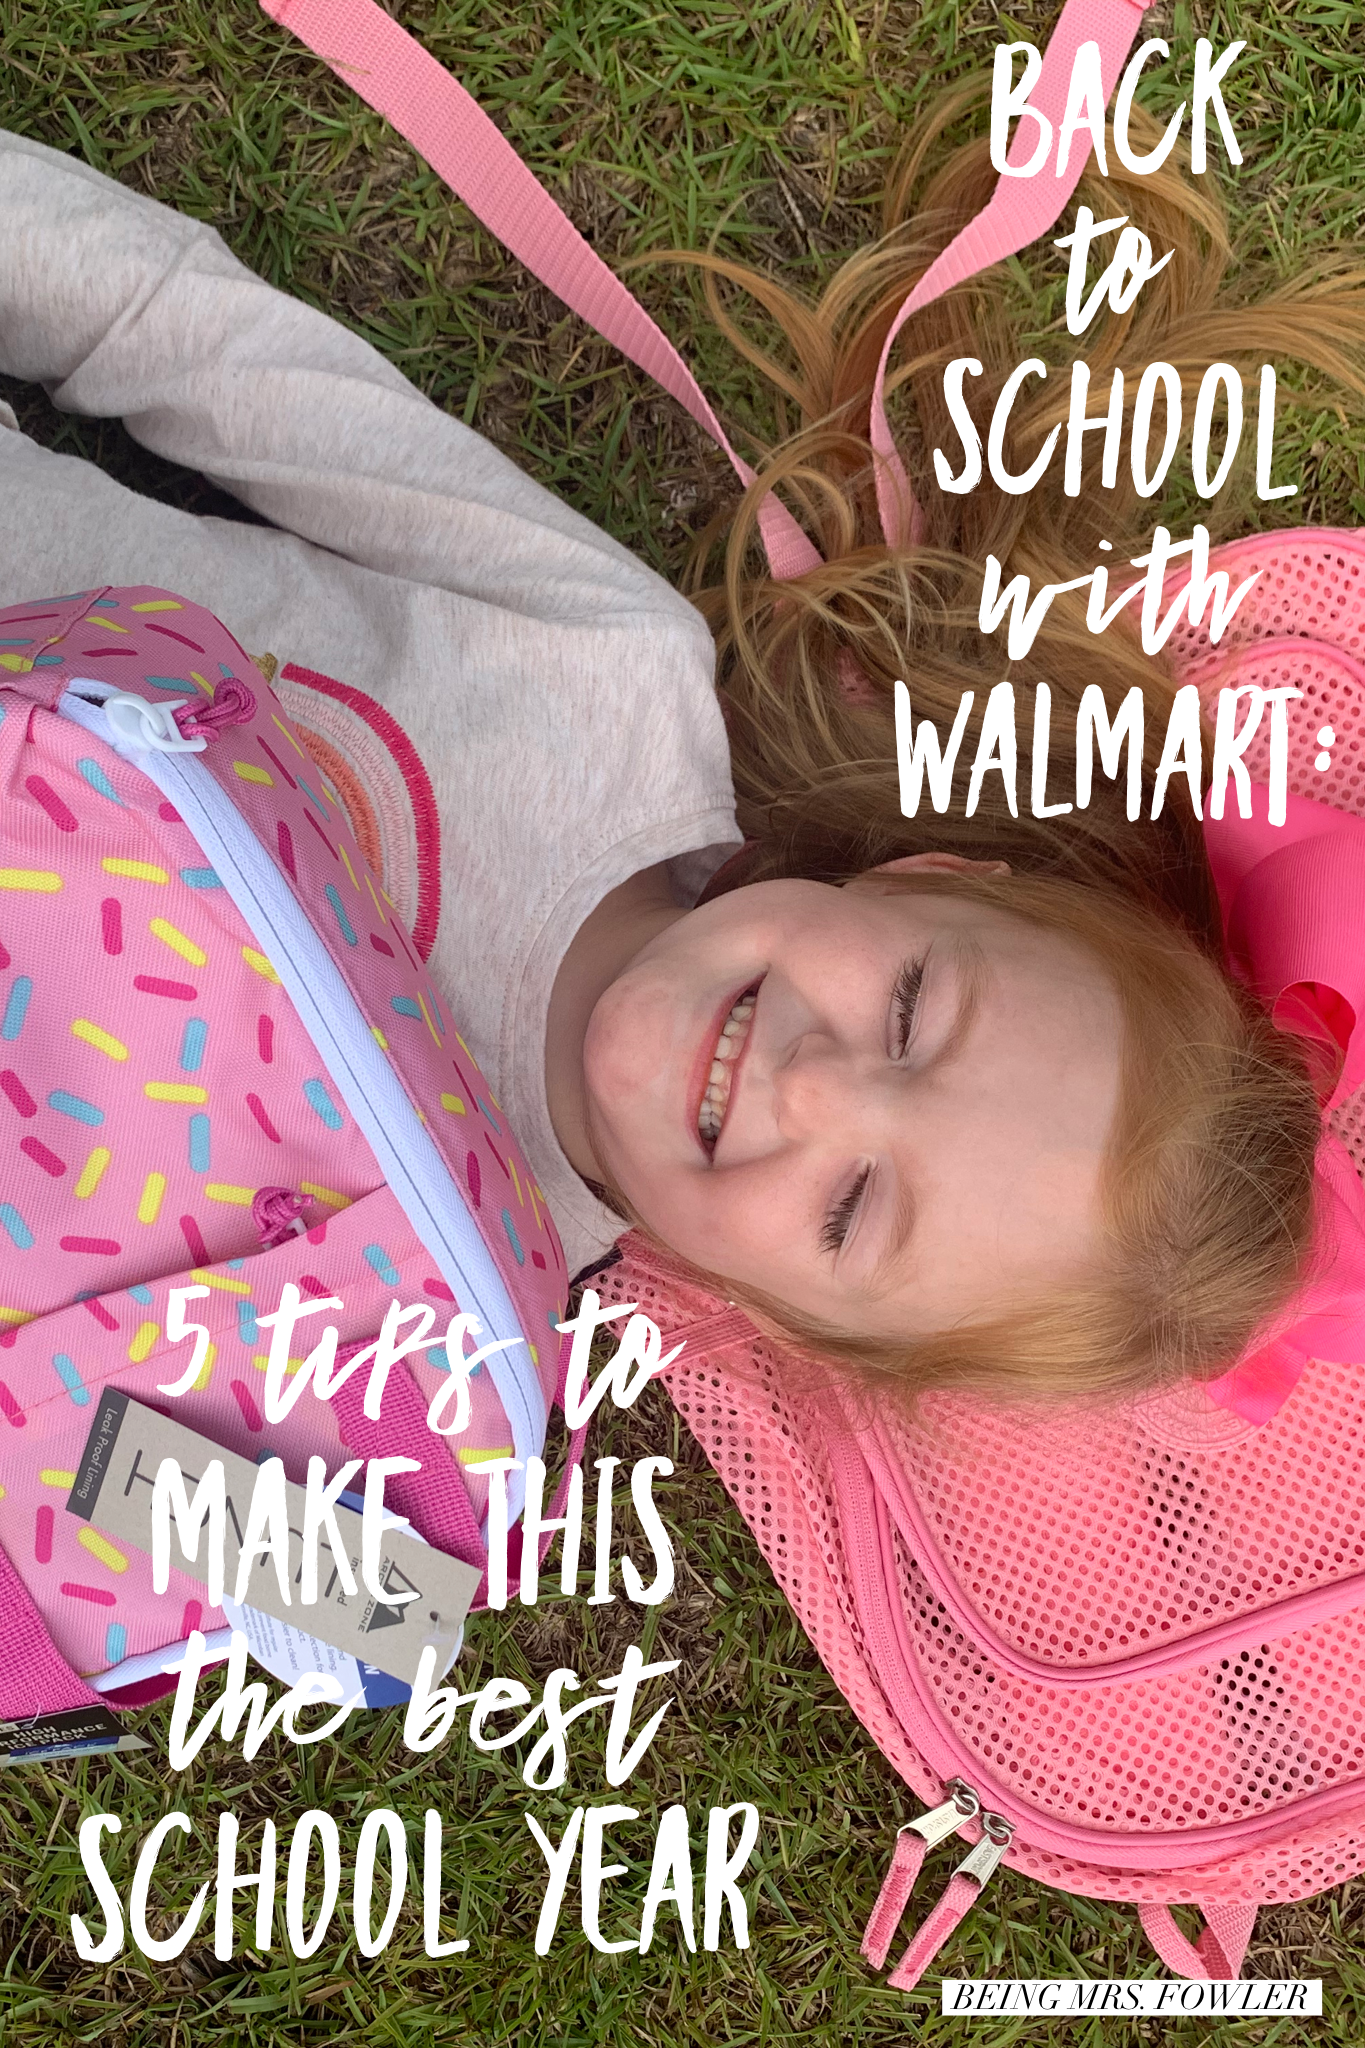 tips to make this the best school year, being mrs. fowler, walmart back to school fashion